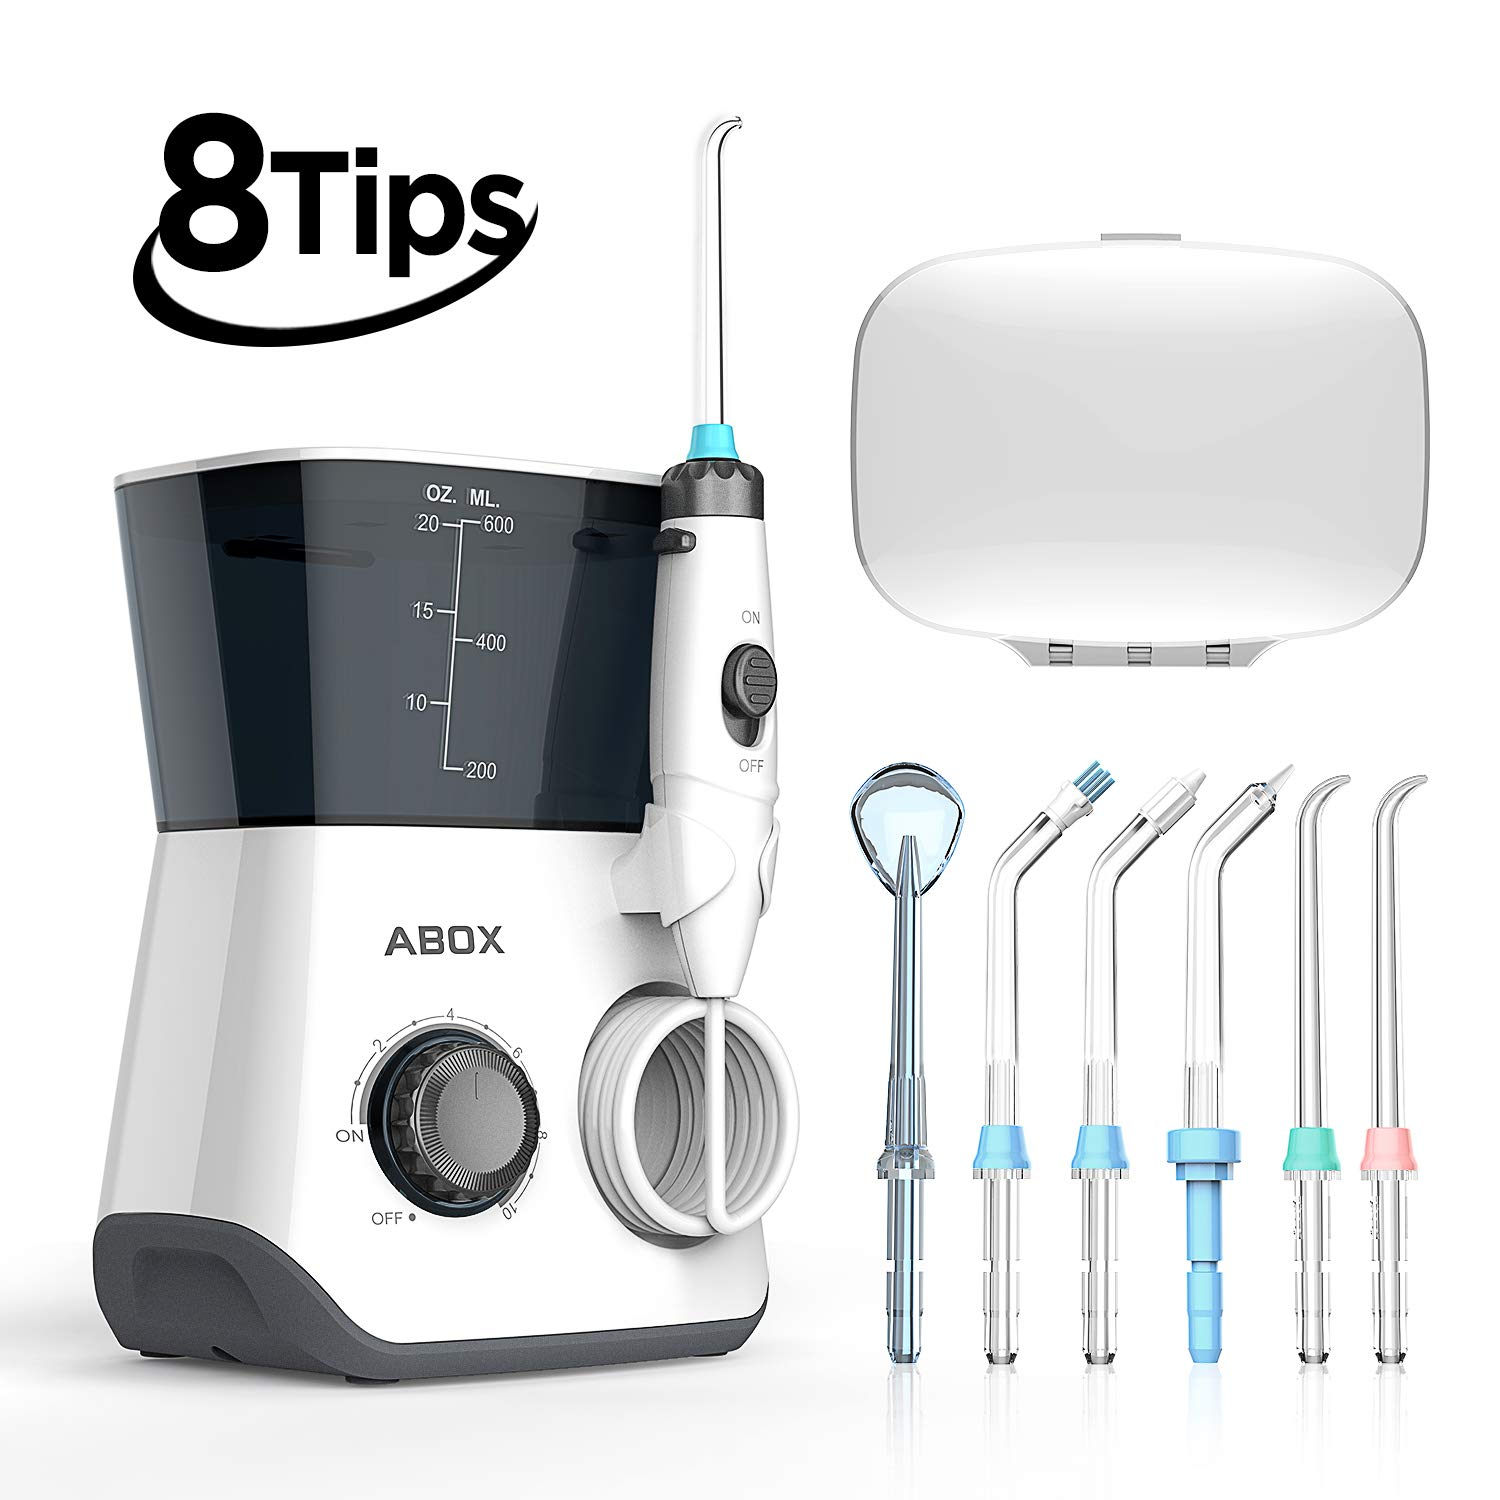 Water Flosser, ABOX Dental Oral Irrigator 600ml Capacity with 8 multifunctional Tips 10 Water Pressures Countertop Dental Flosser(FDA Approved) by ABOX